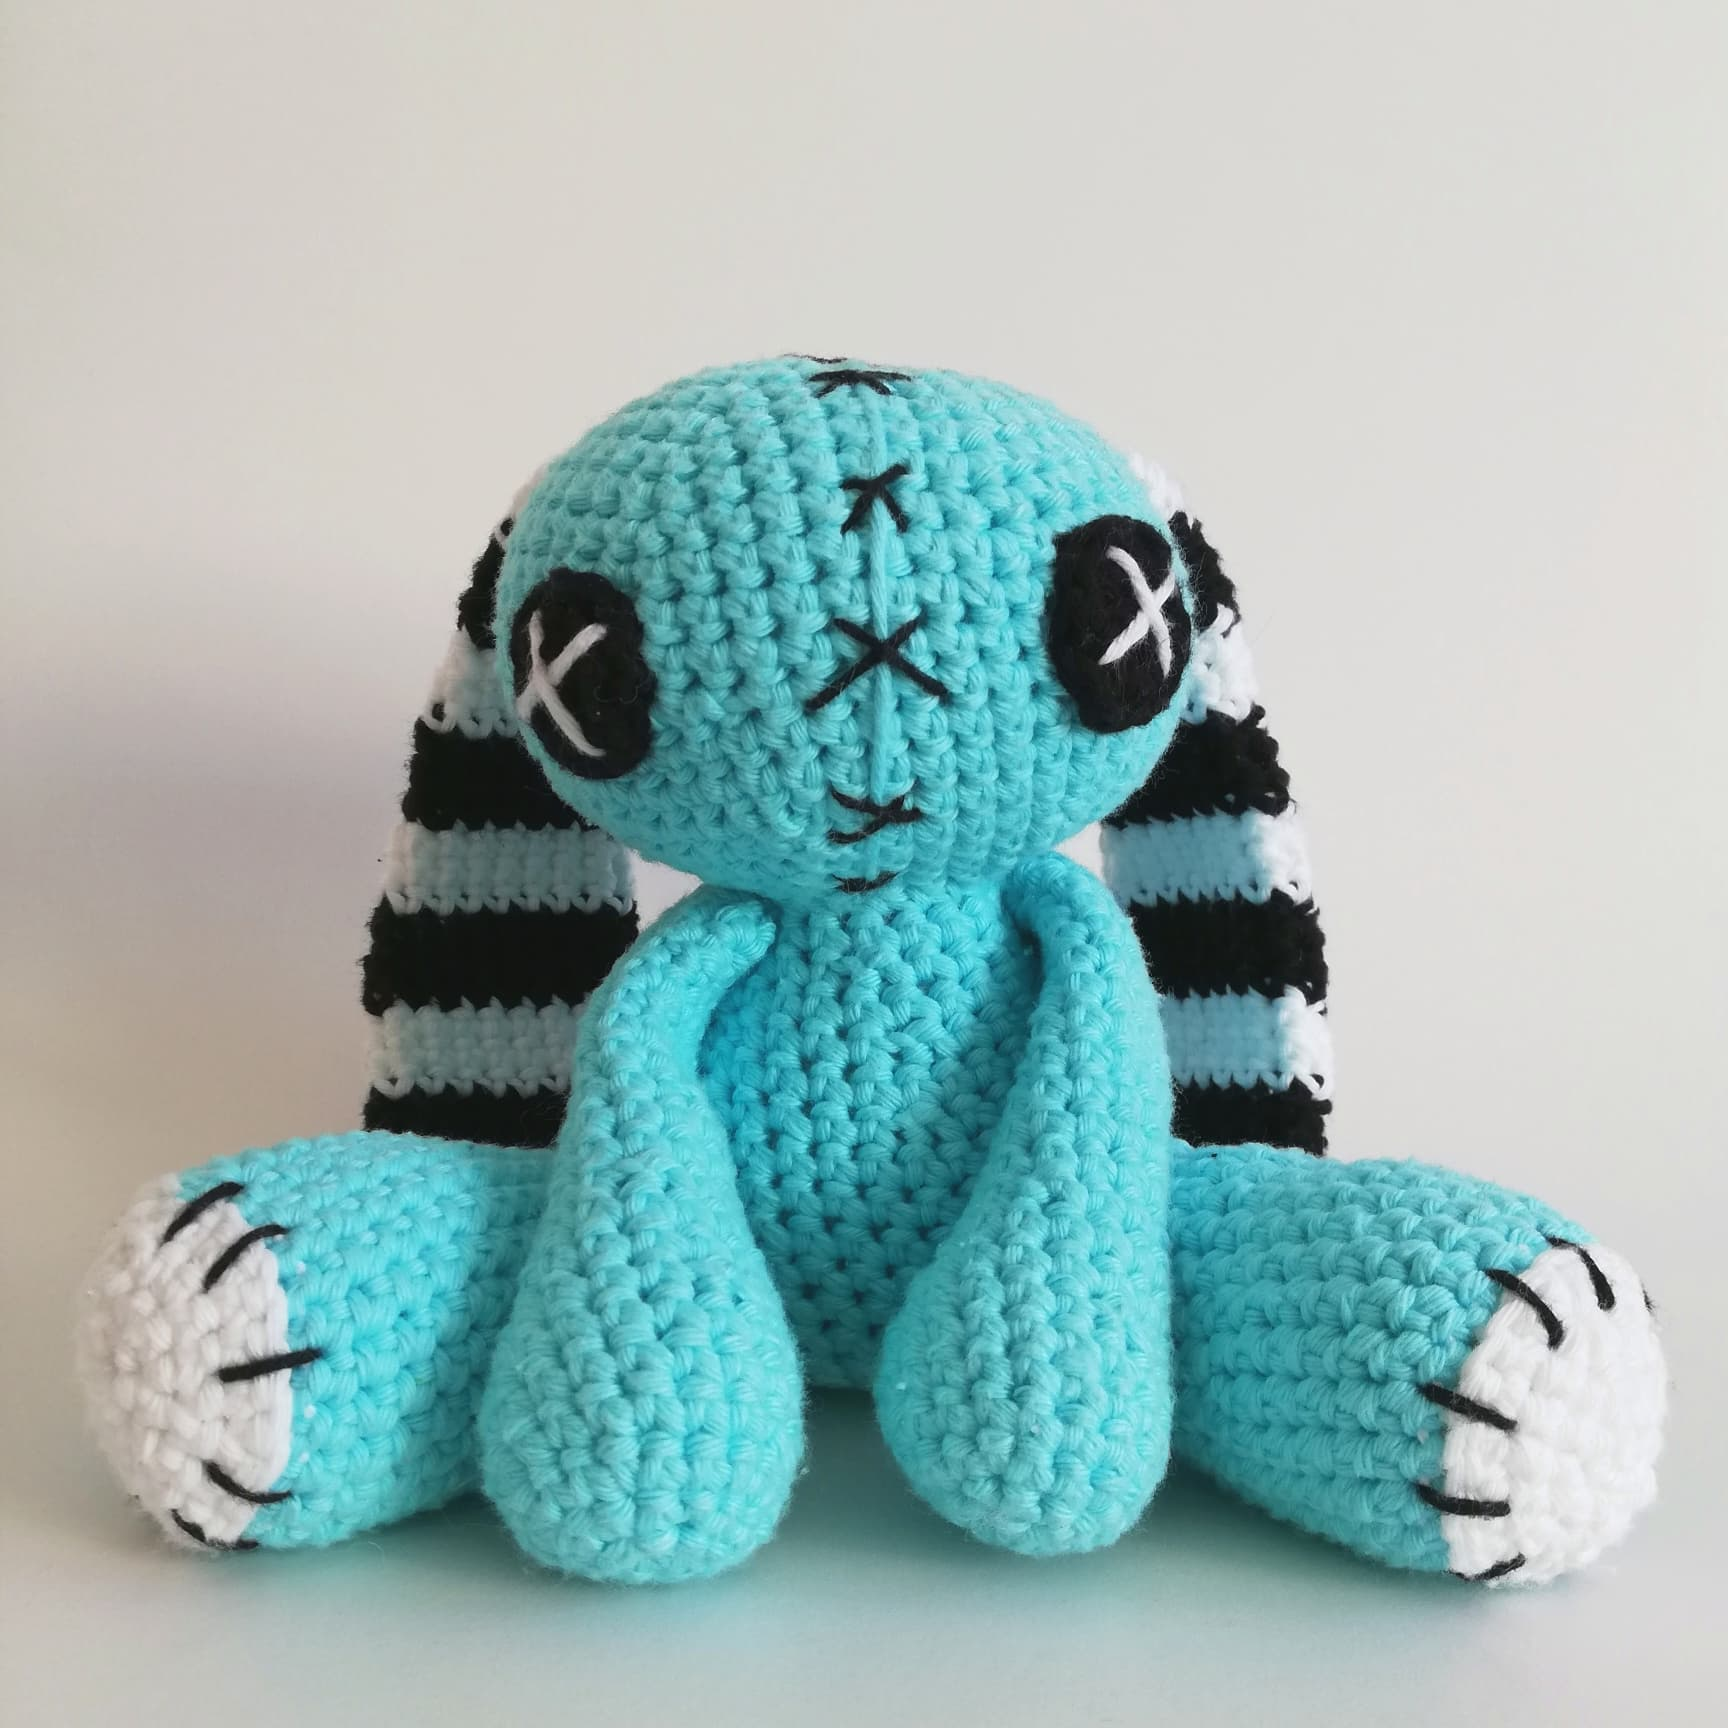 1000's of Free Amigurumi and Toy Crochet Patterns (535 free ... | 1728x1728